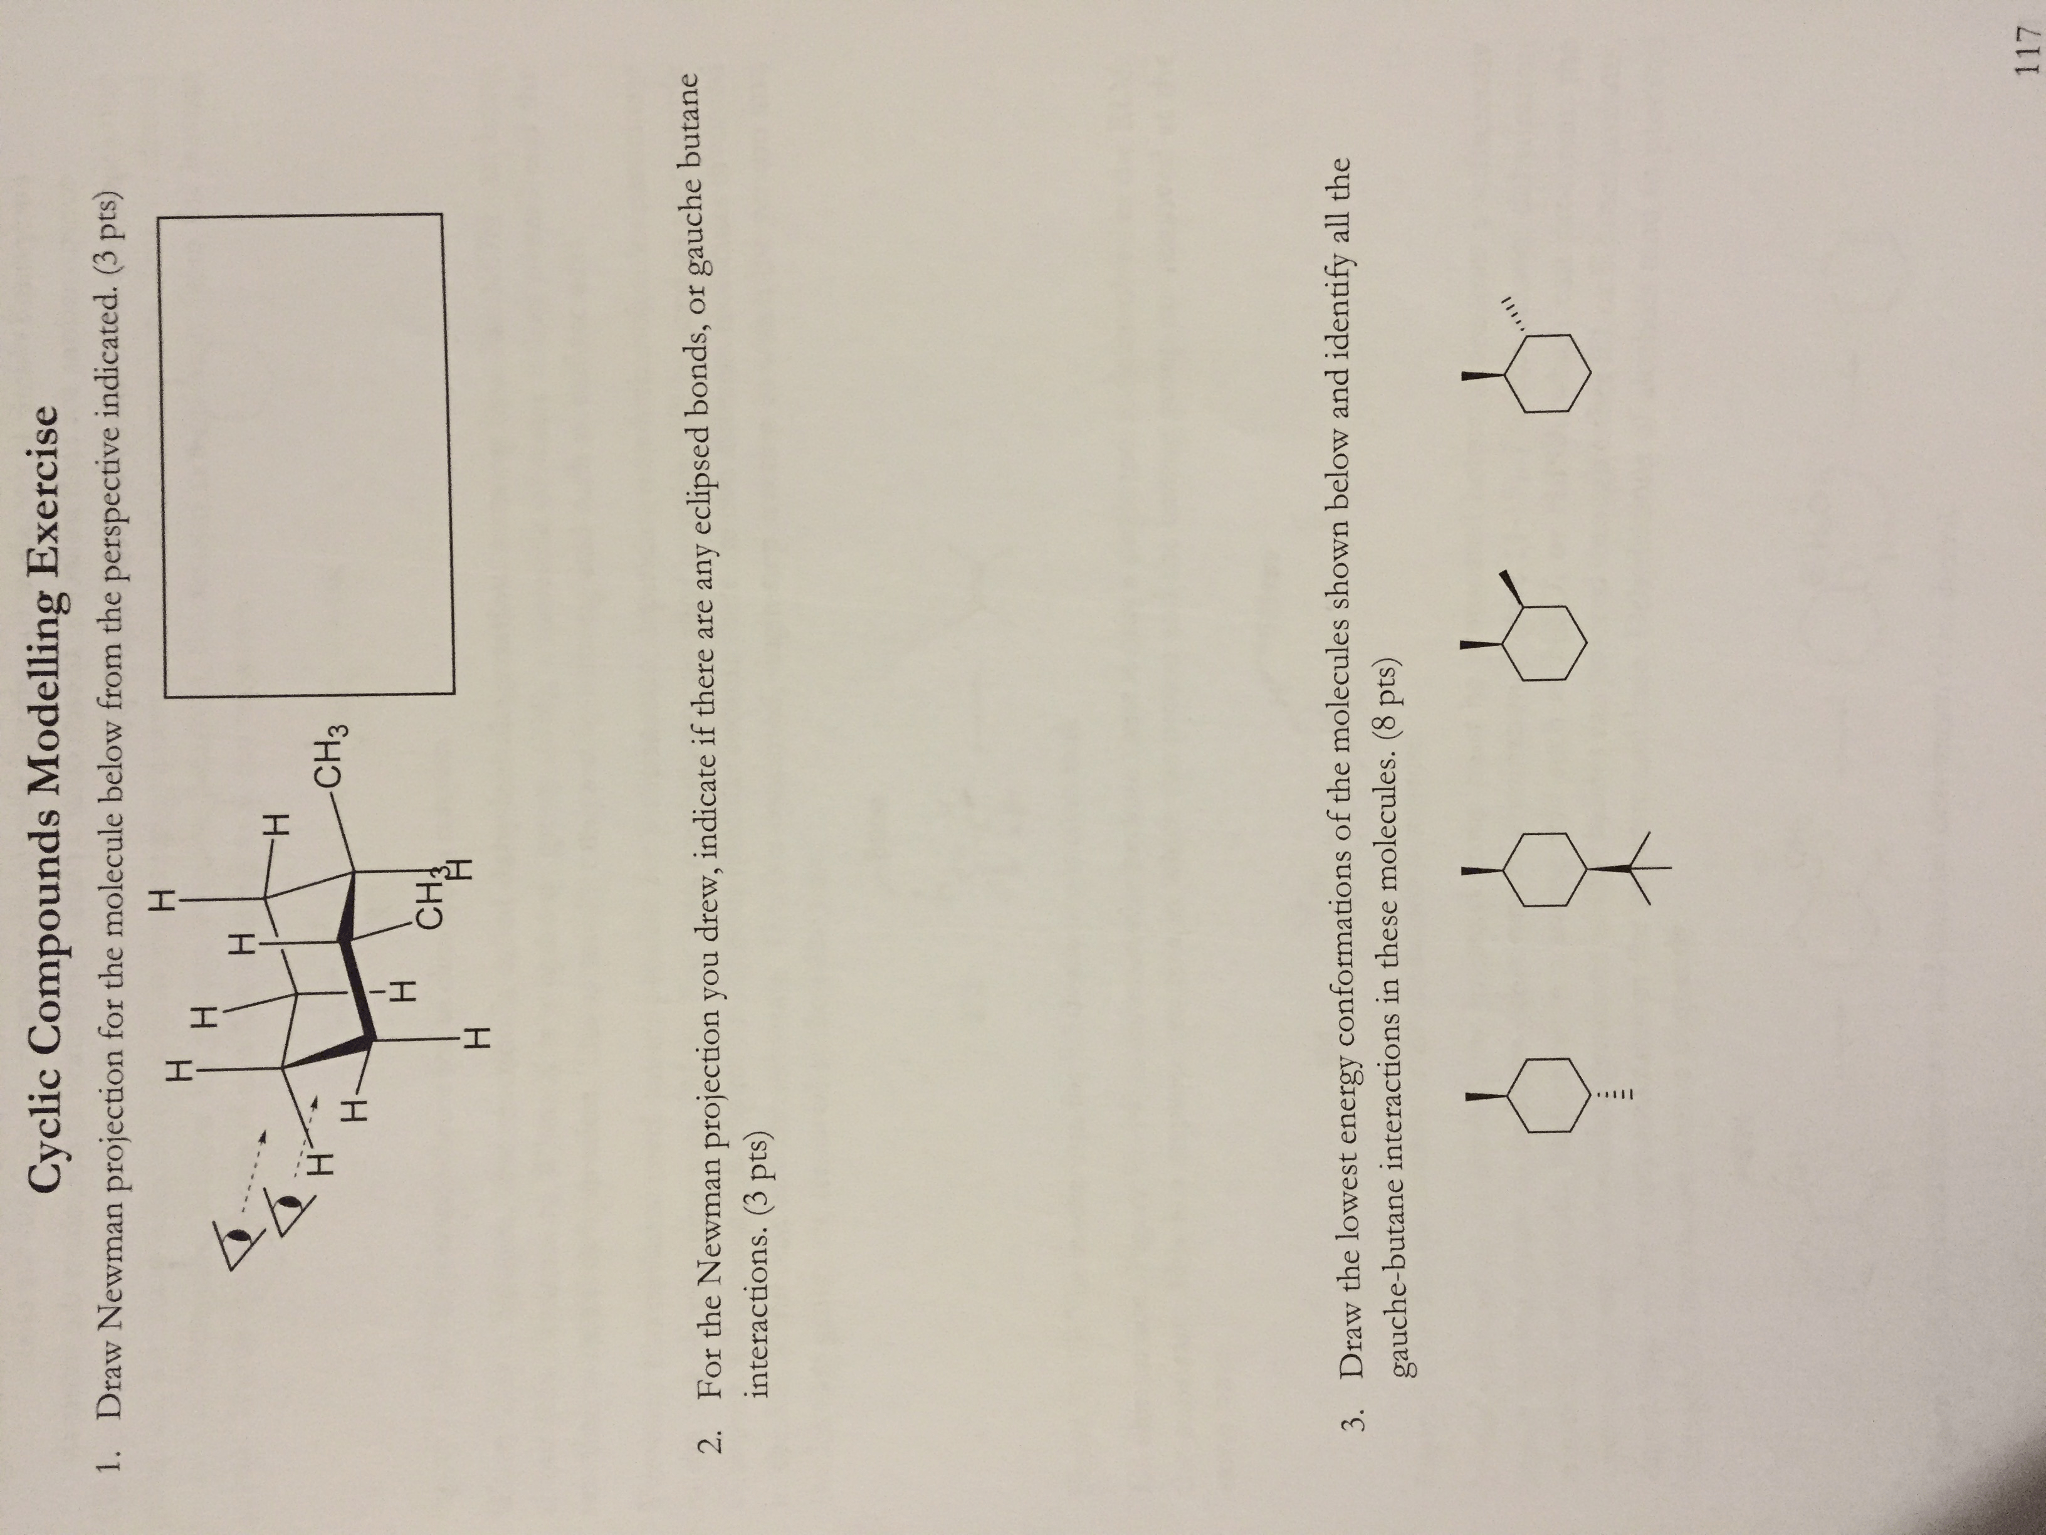 How To Draw Newman Projections For Cyclic Compounds